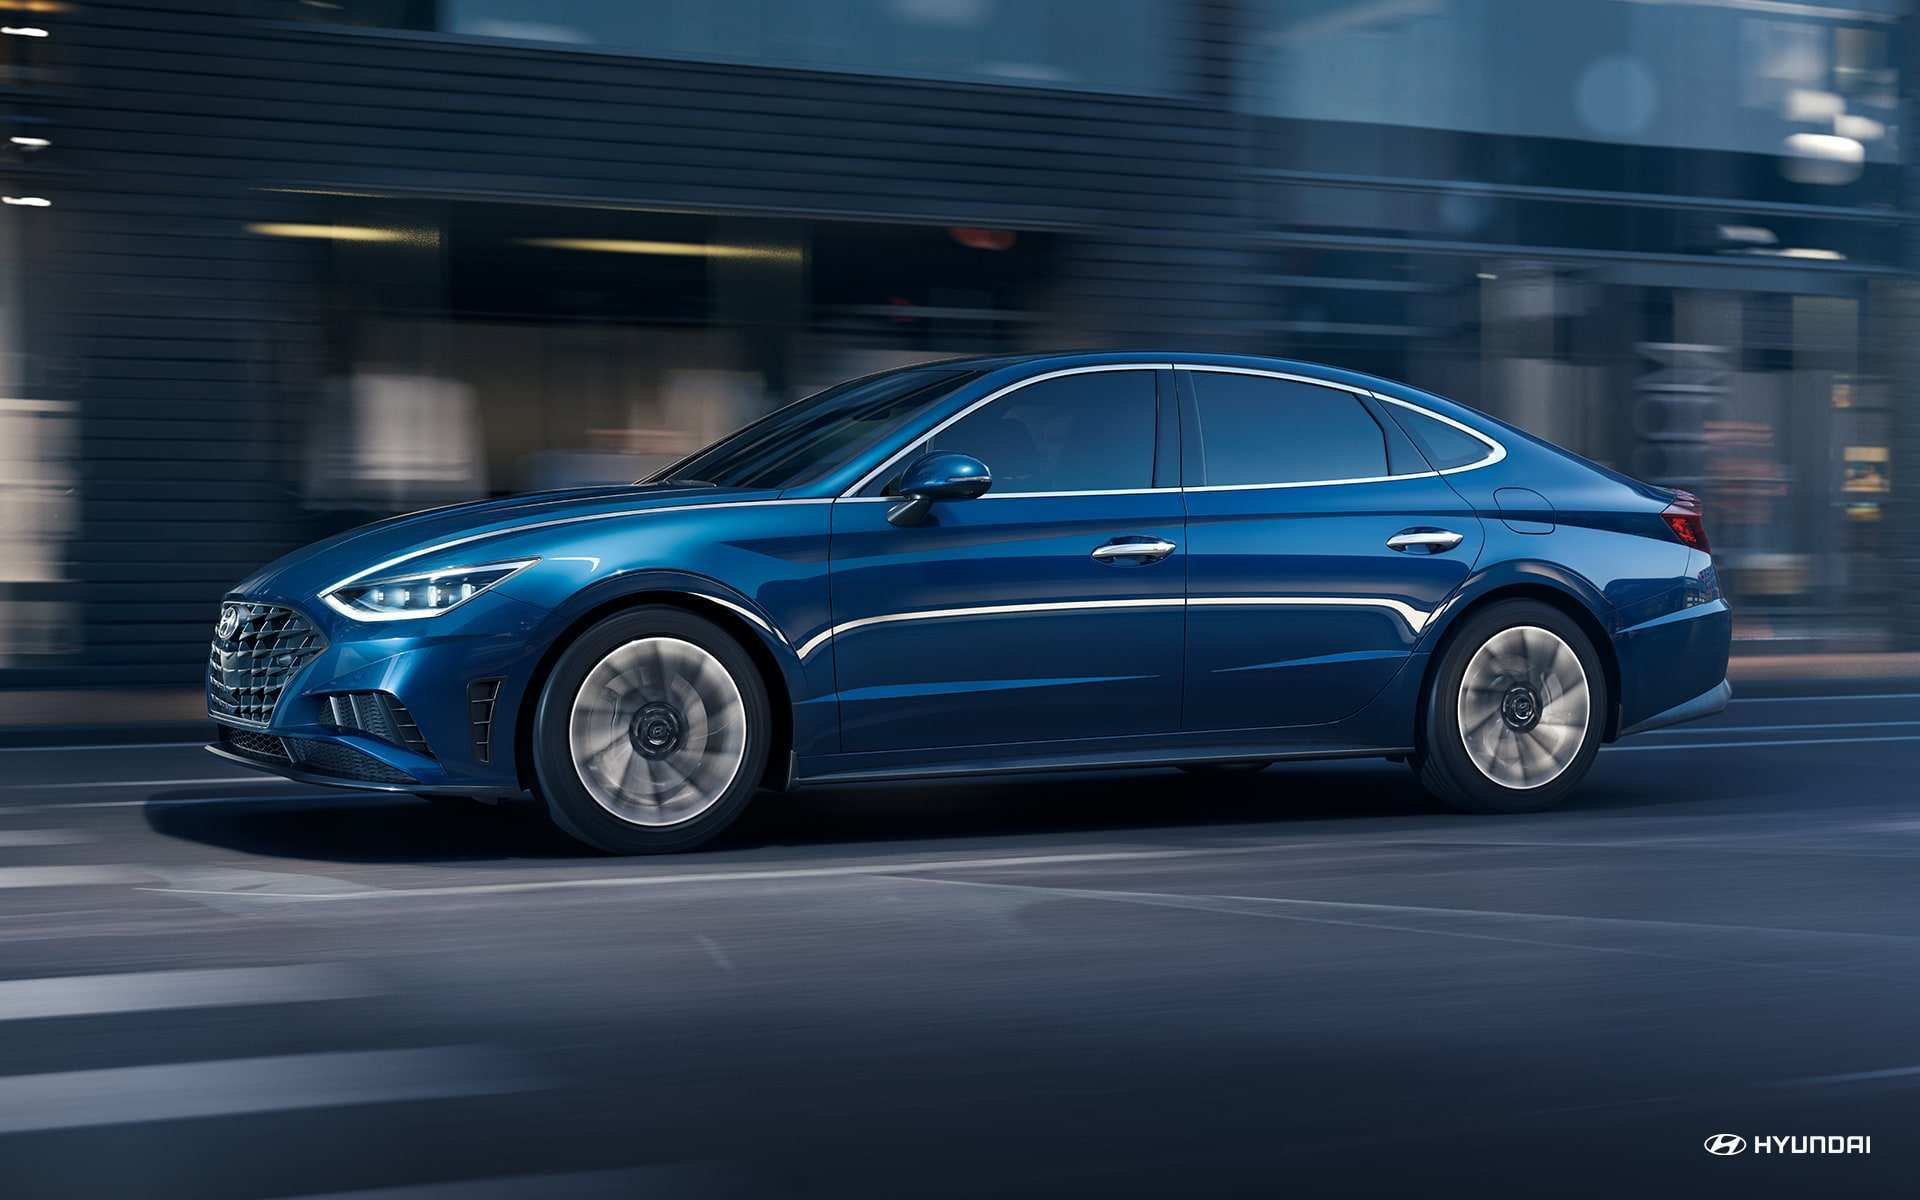 40 All New Hyundai Sonata 2020 Price And Review